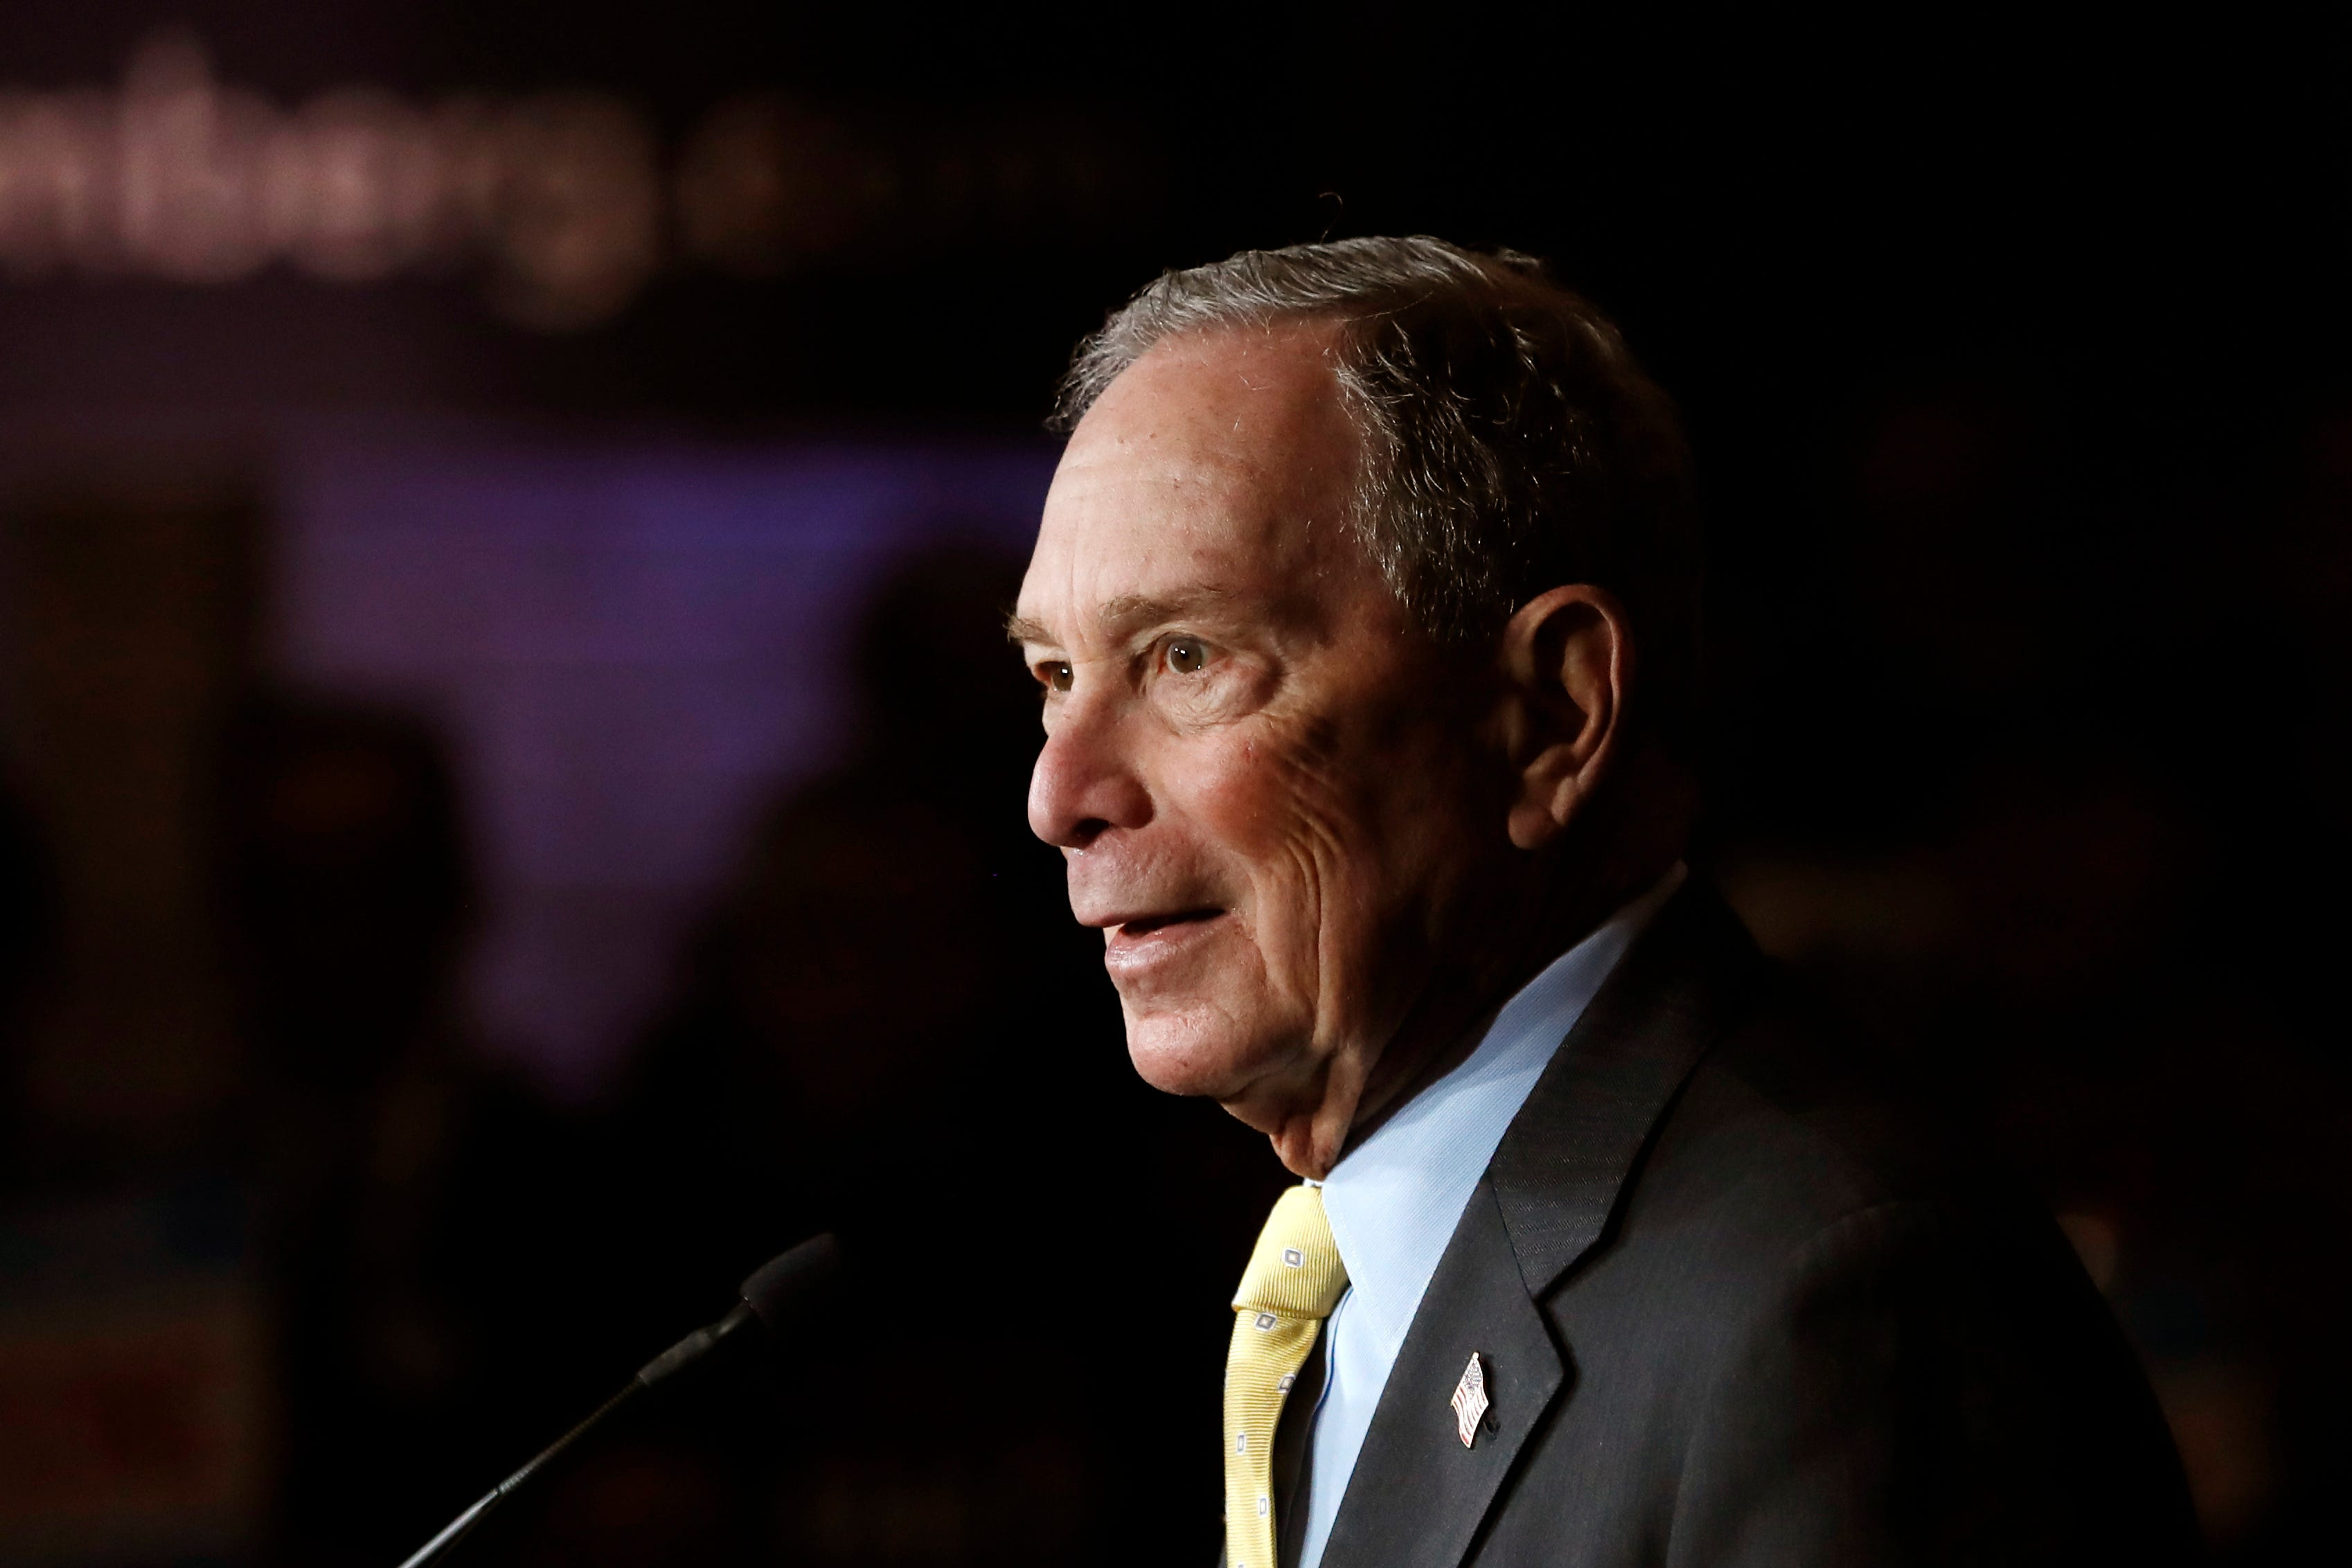 Democrats should support grassroots to capitalize on the Bloomberg bankroll